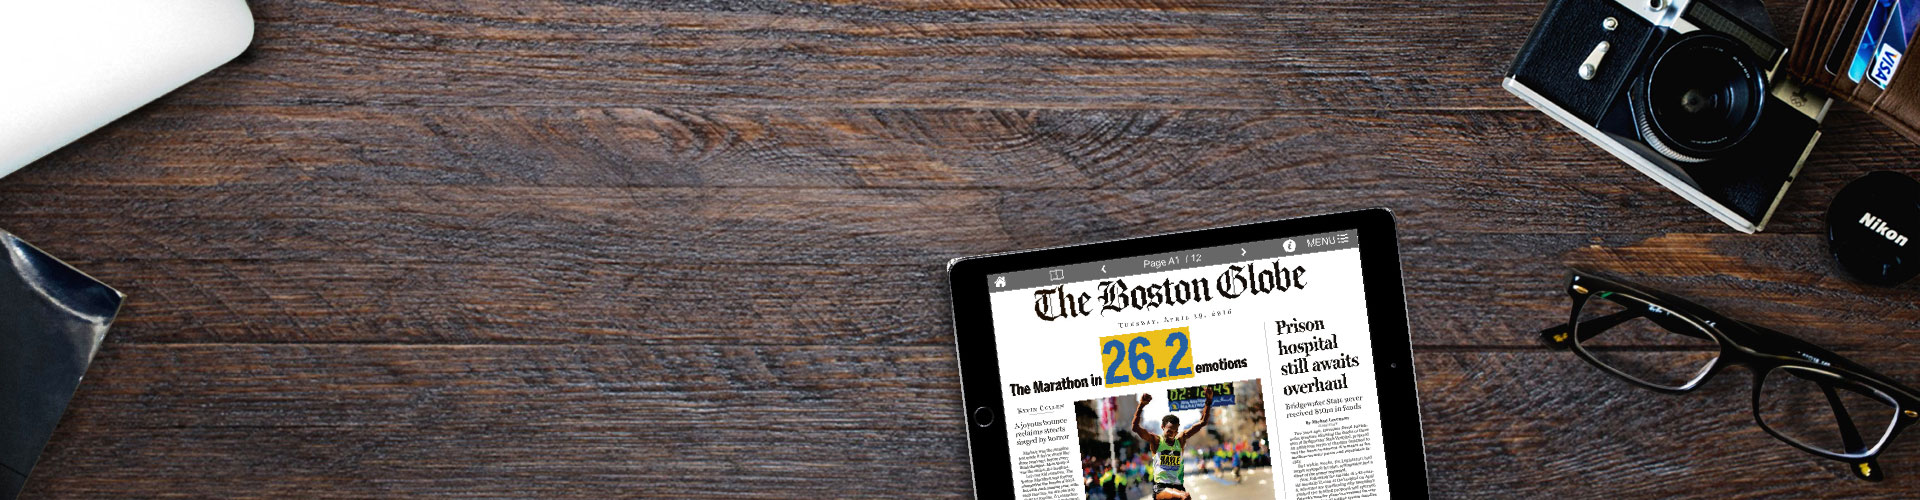 PageSuite Join Forces with The Boston Globe